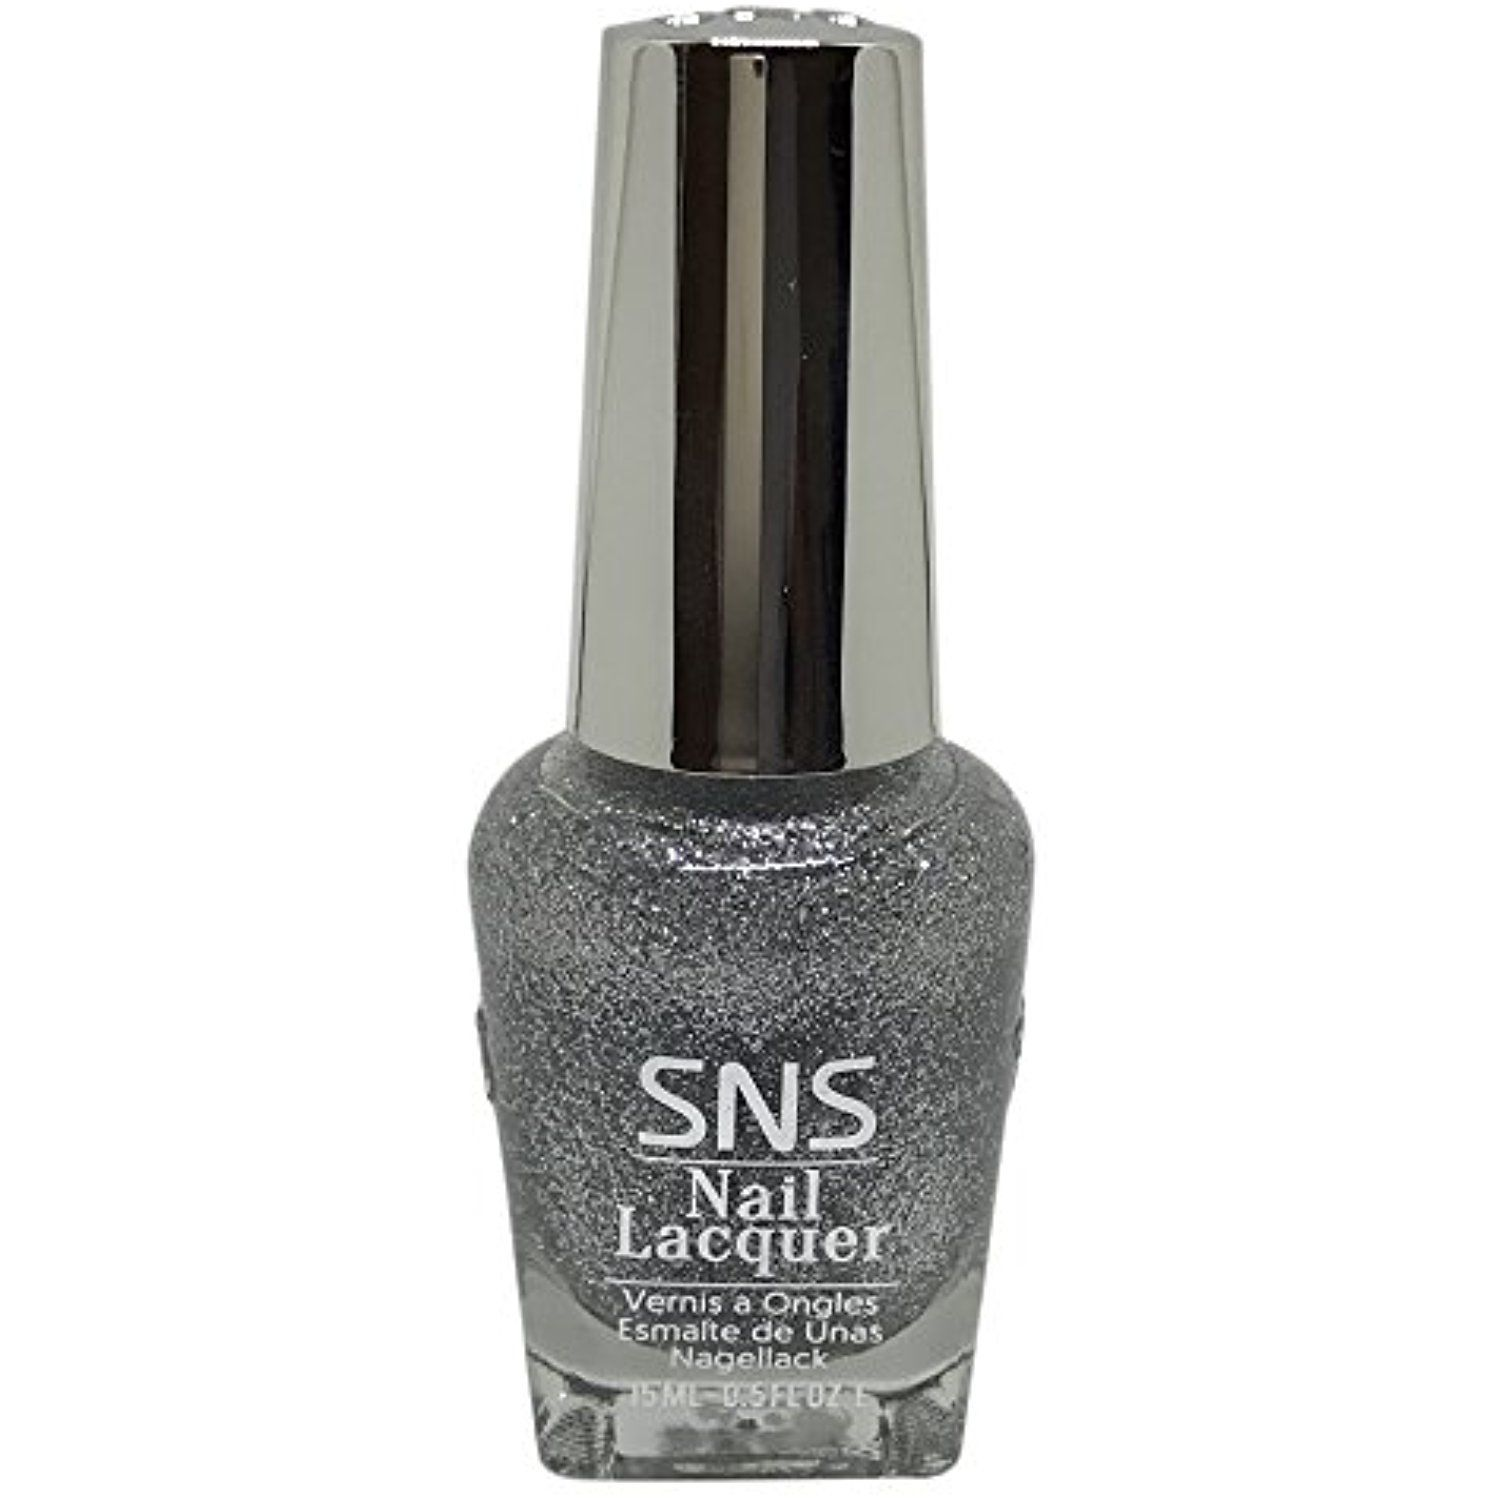 Sns Nails Lacquer Matching With Dipping Powder 108 Want